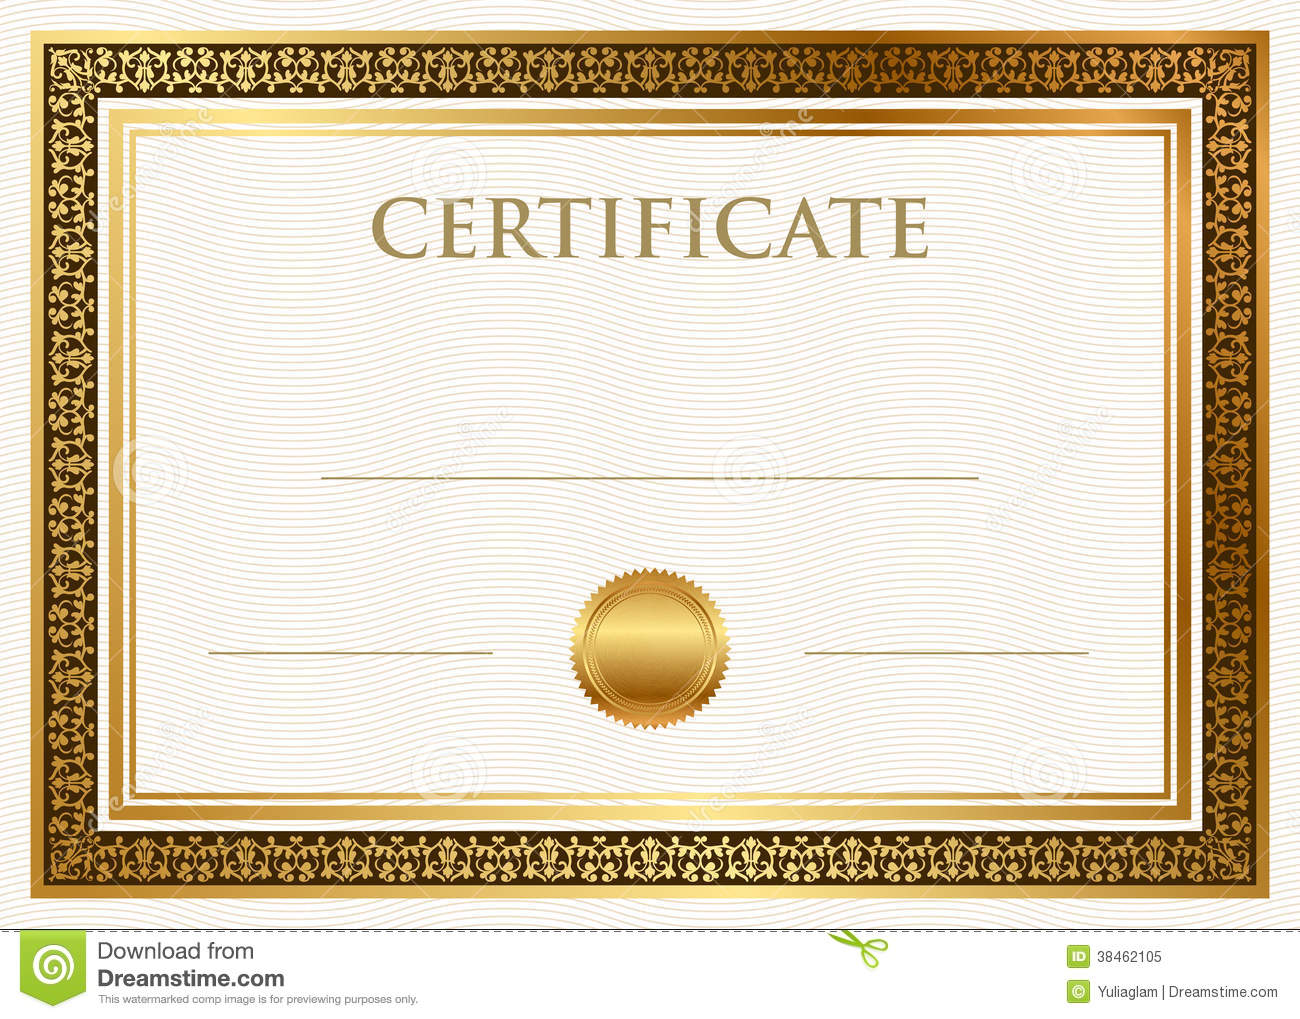 Certificate Of Achievement With Wax Seal Royalty Free Photo – Free Certificate of Achievement